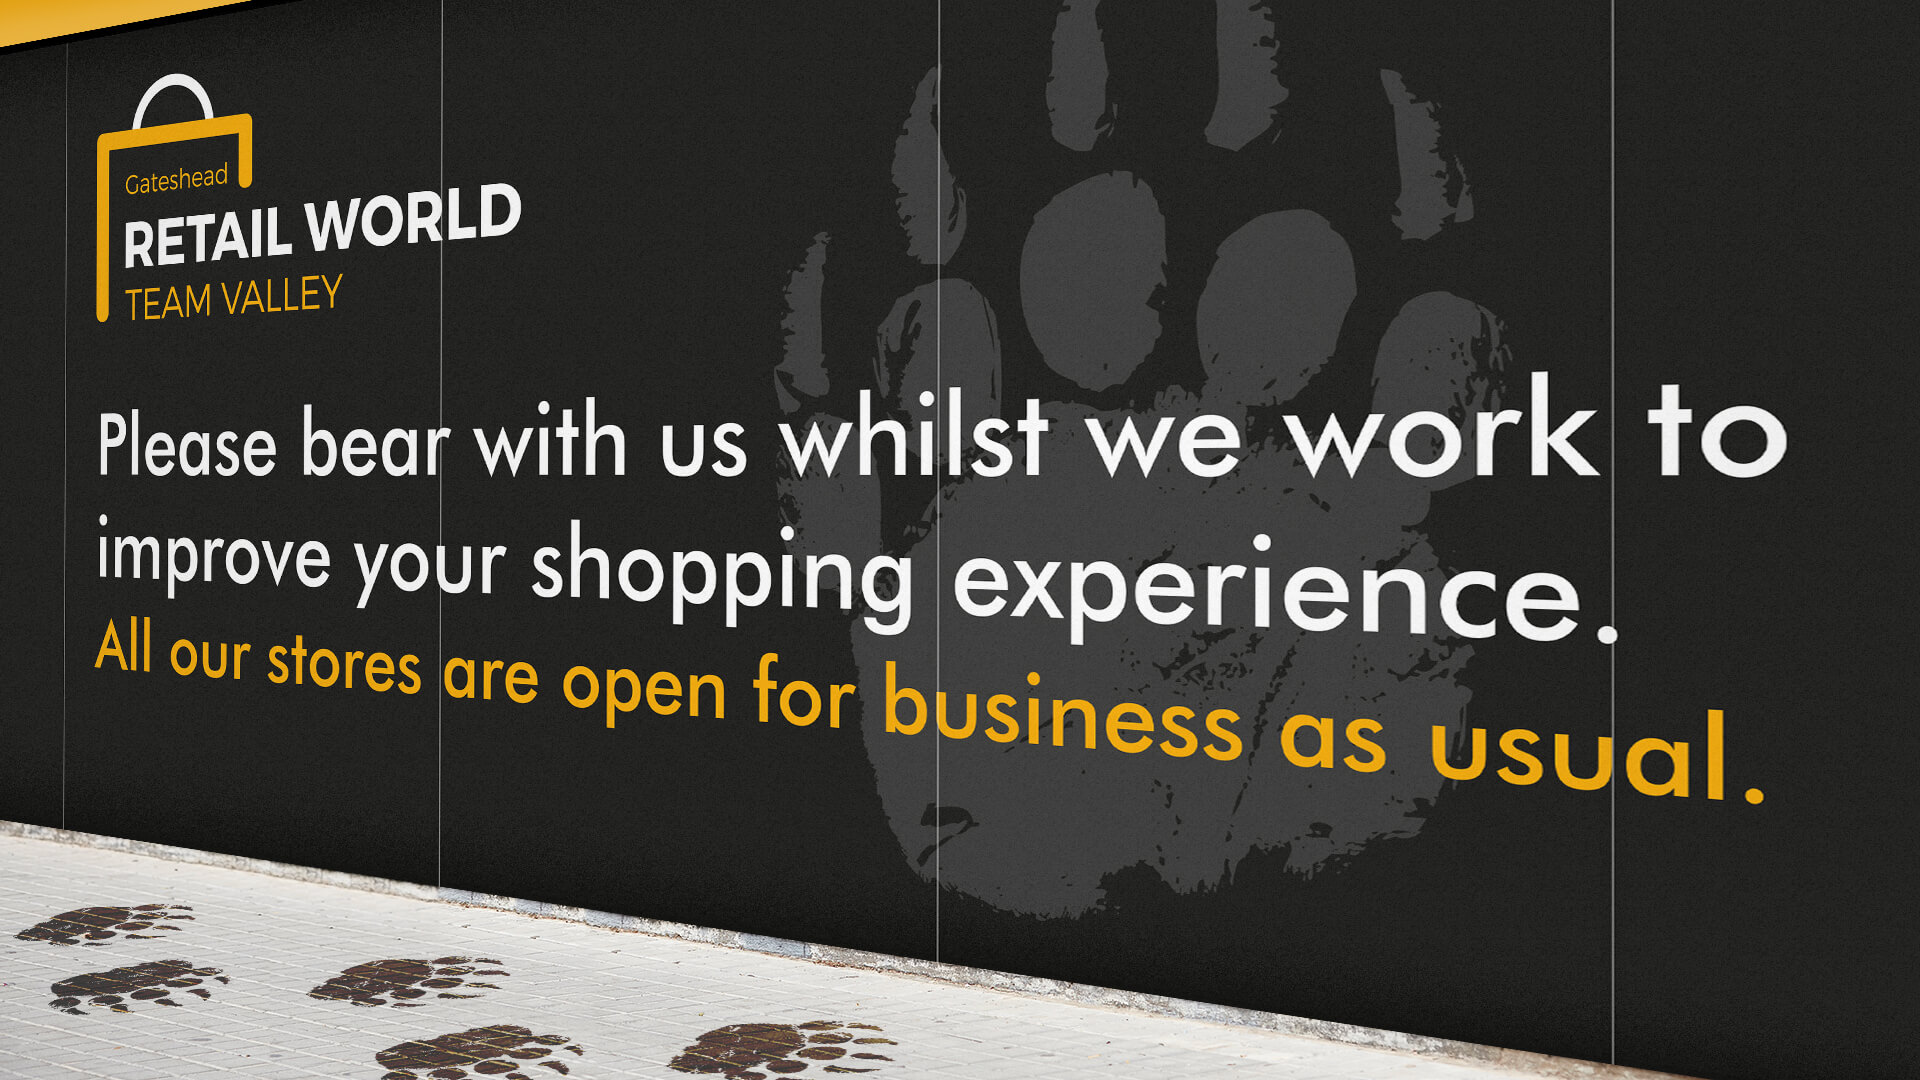 Retail World Hoarding Design